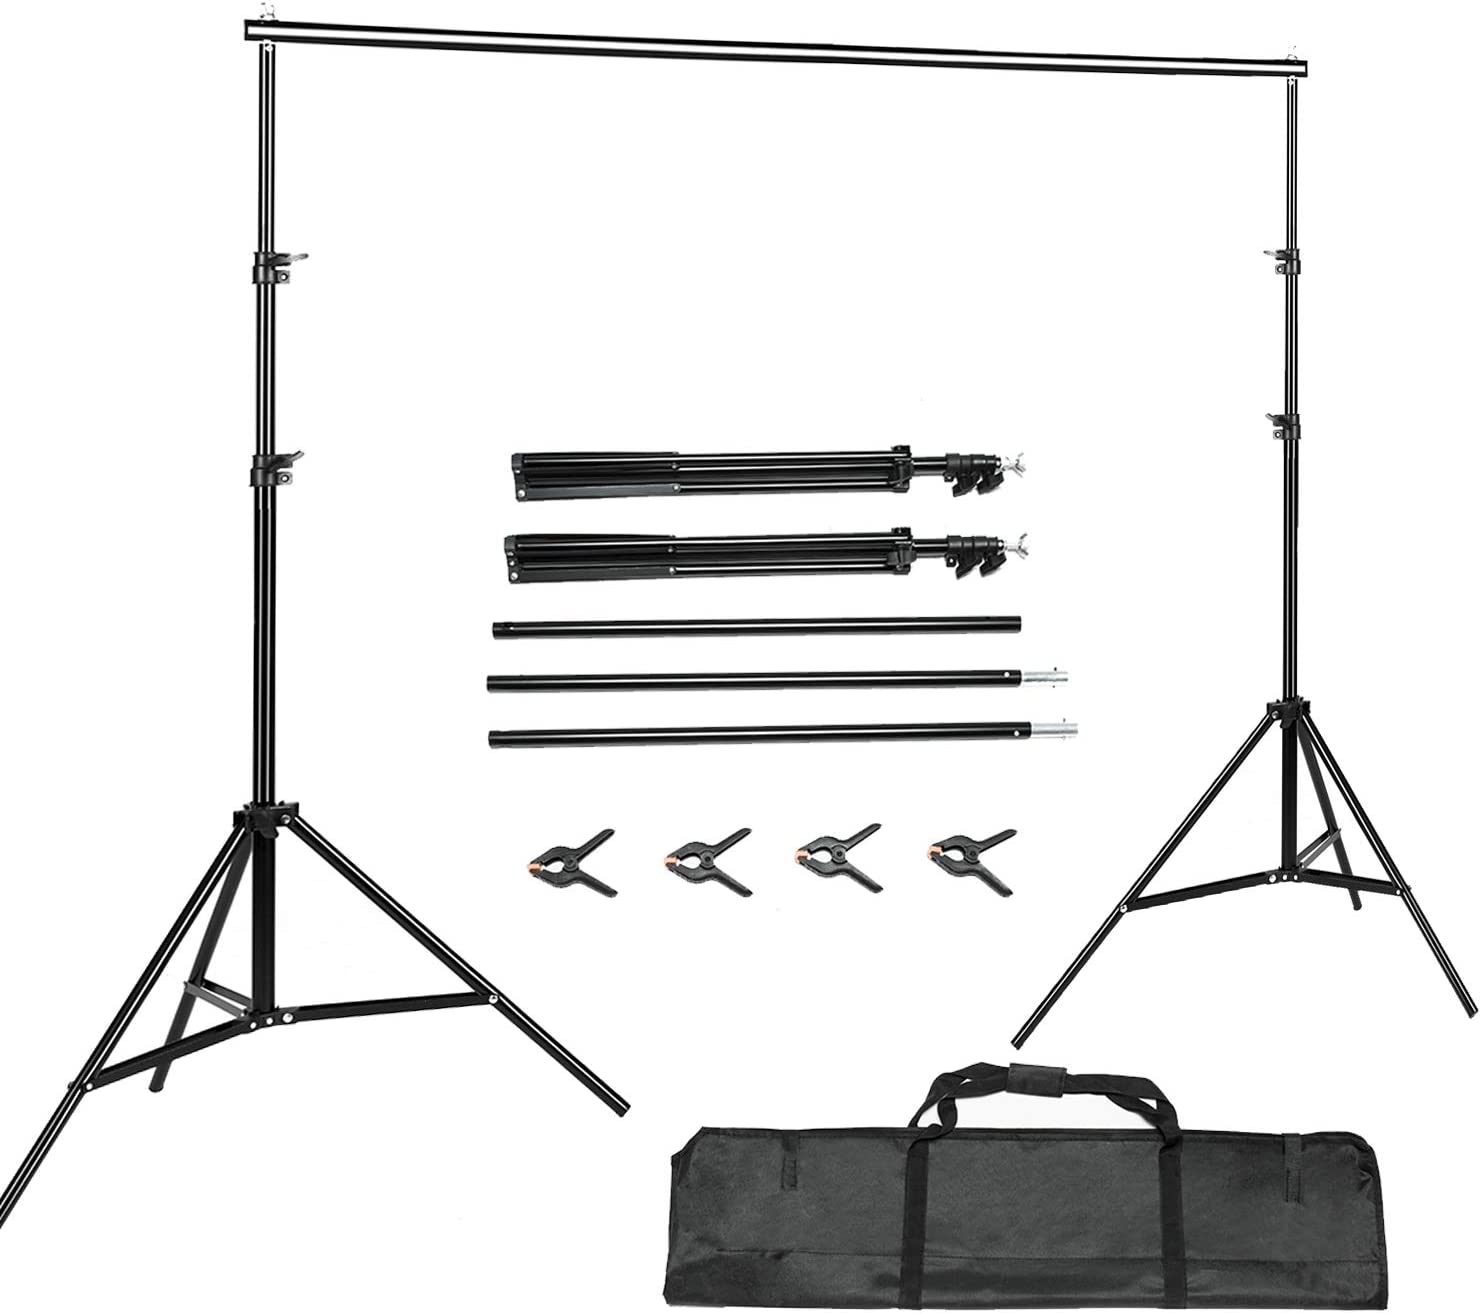 BEIYANG Backdrop Stand,7.5FTx10FT Photography Backdrops Stand Adjustable Photography Studio Background Support System Kit with Carrying Bag for Photo Video Shooting